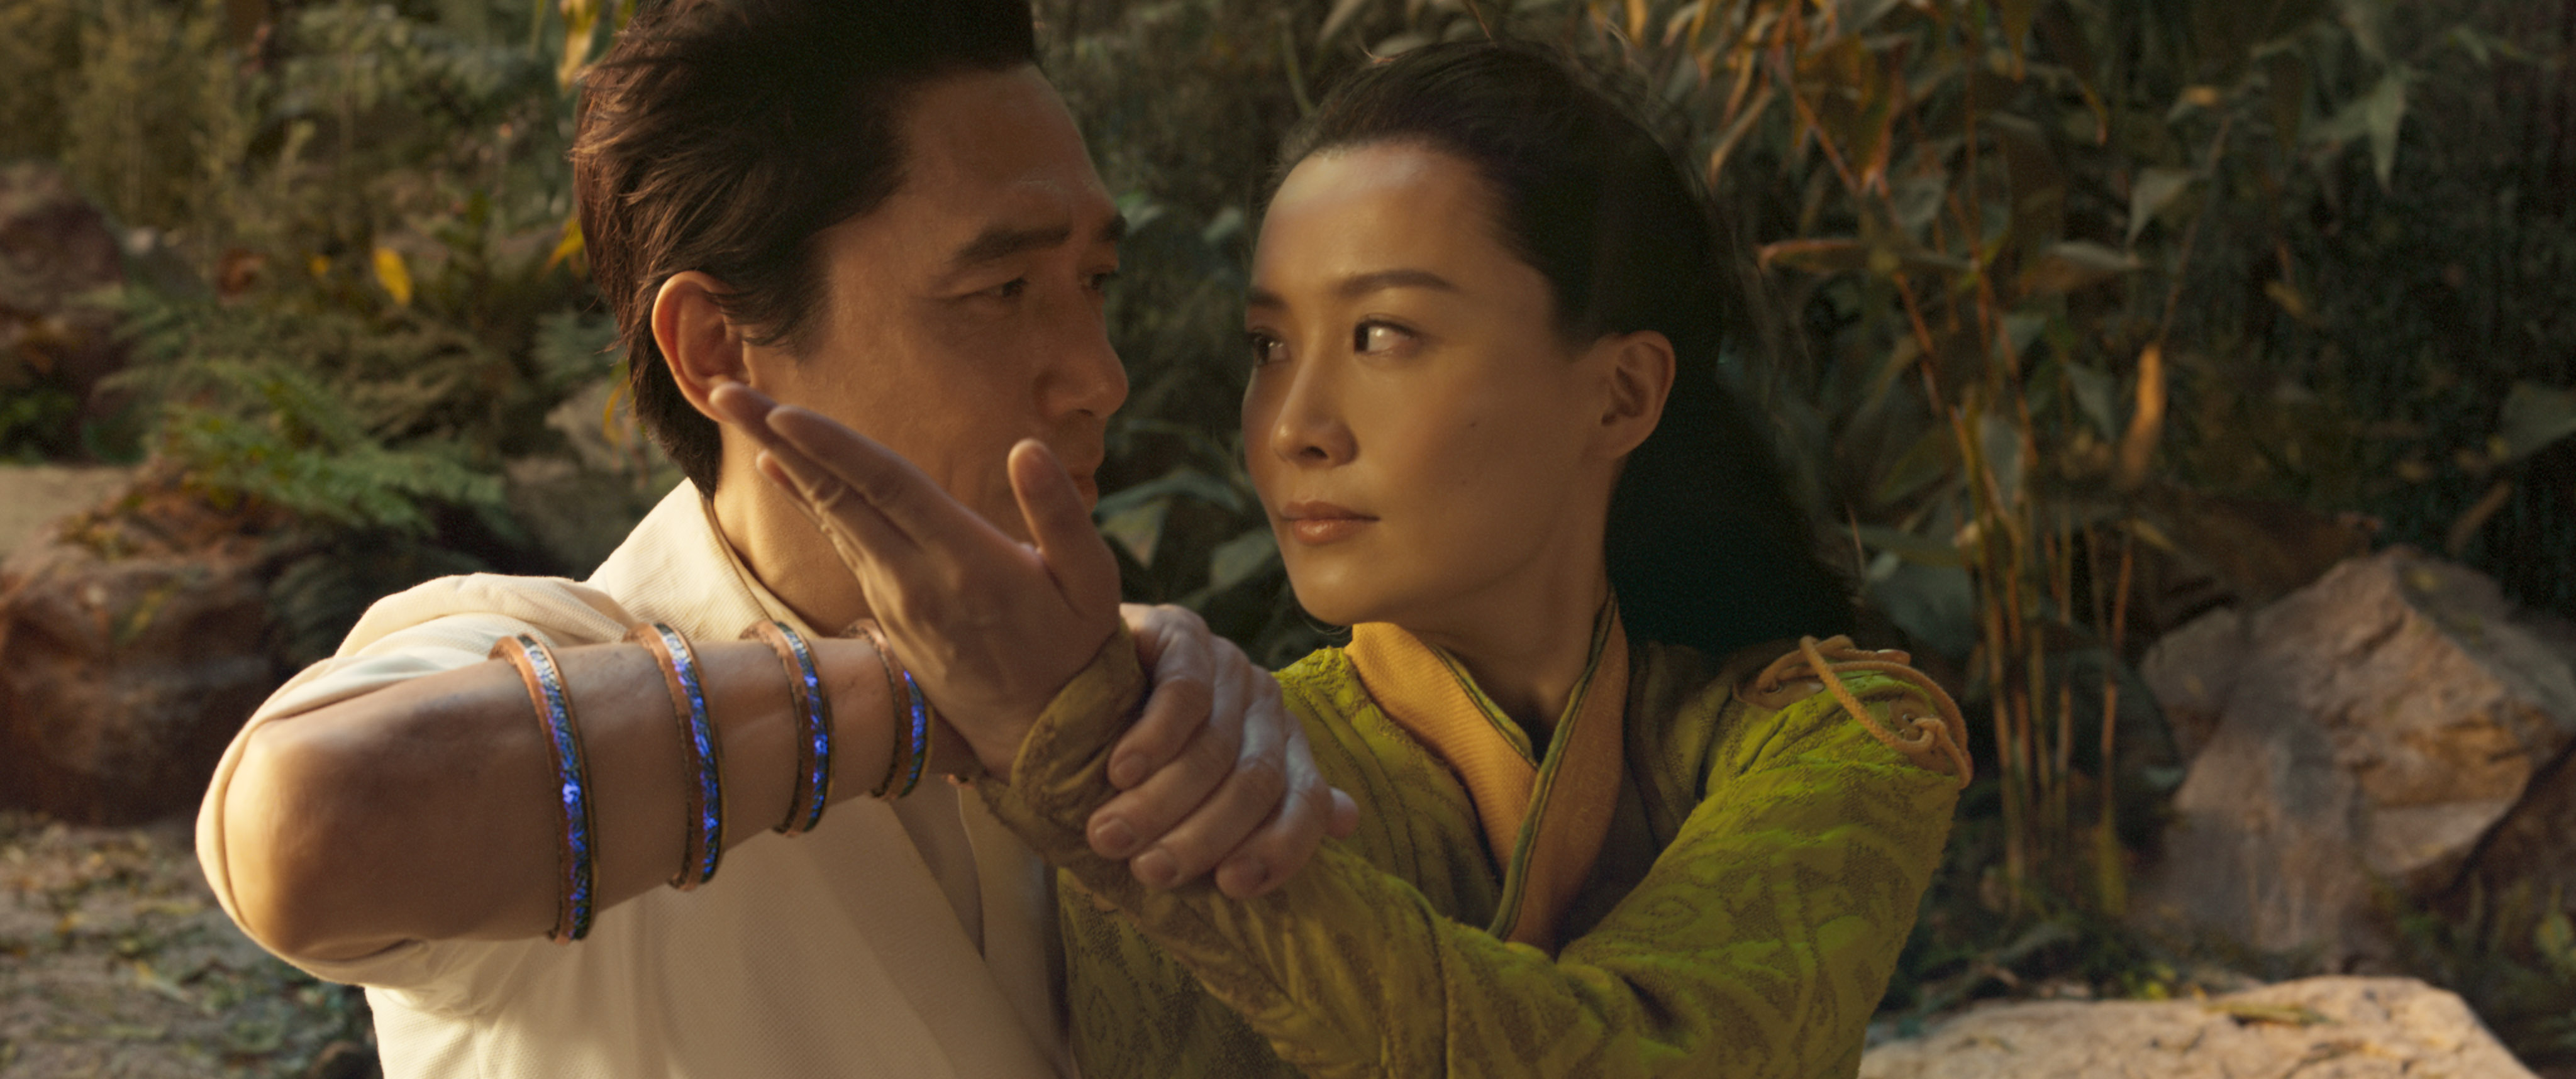 Tony Leung, left, as Wenwu and Fala Chen as Jiang Li in Shang-Chi and the Legend of the Ten Rings.